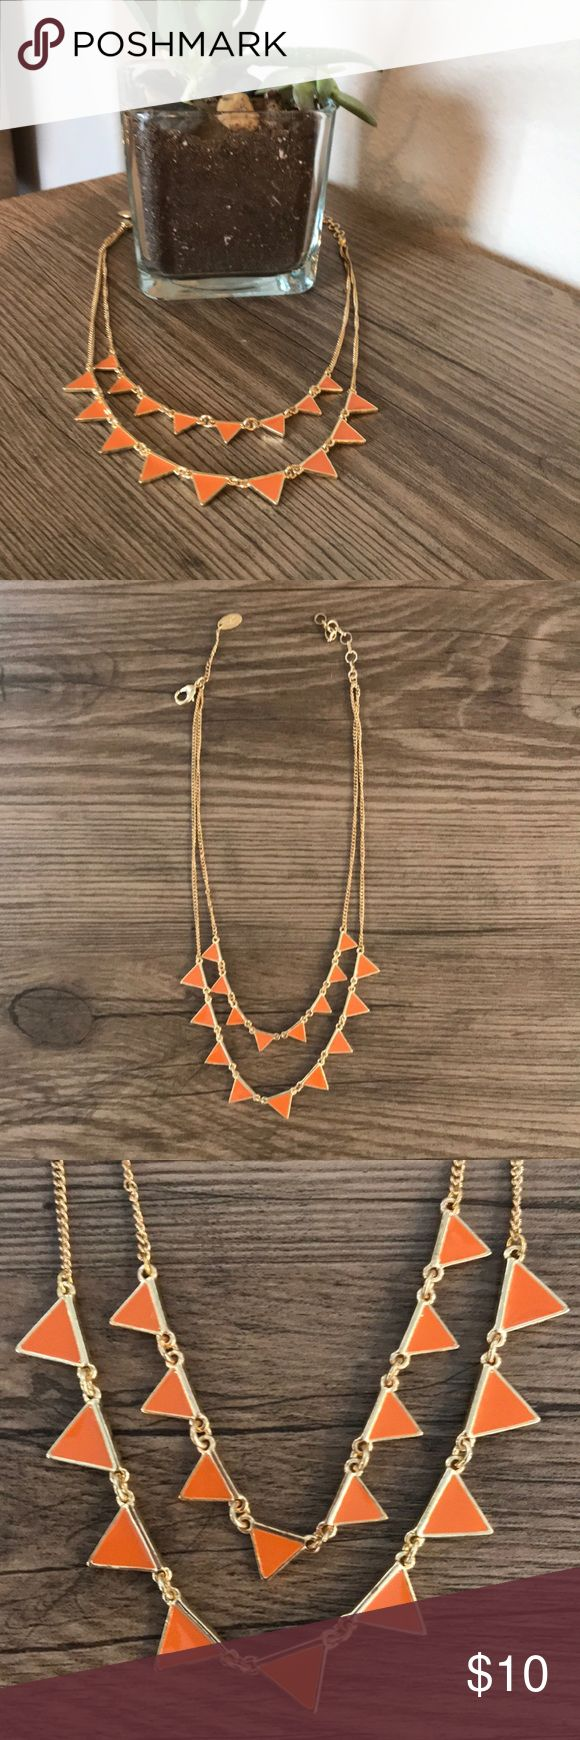 "Double Stranded Gold and Orange Layered Necklace SELLER DISCOUNT - 15% OFF 2+ items!  Add this double strand layered necklace with orange geometric details to your jewelry box today!  Color: goldtone multi strand chain with orange enamel triangle accents  Length: shorter chain is approx 15"" with extender, longer chain is approx 18""  Former fashion buyer and active Posher since 2015! Adult owned, smoke-free home. I take care of my merchandise; it is in excellent condition (unless specifically…"